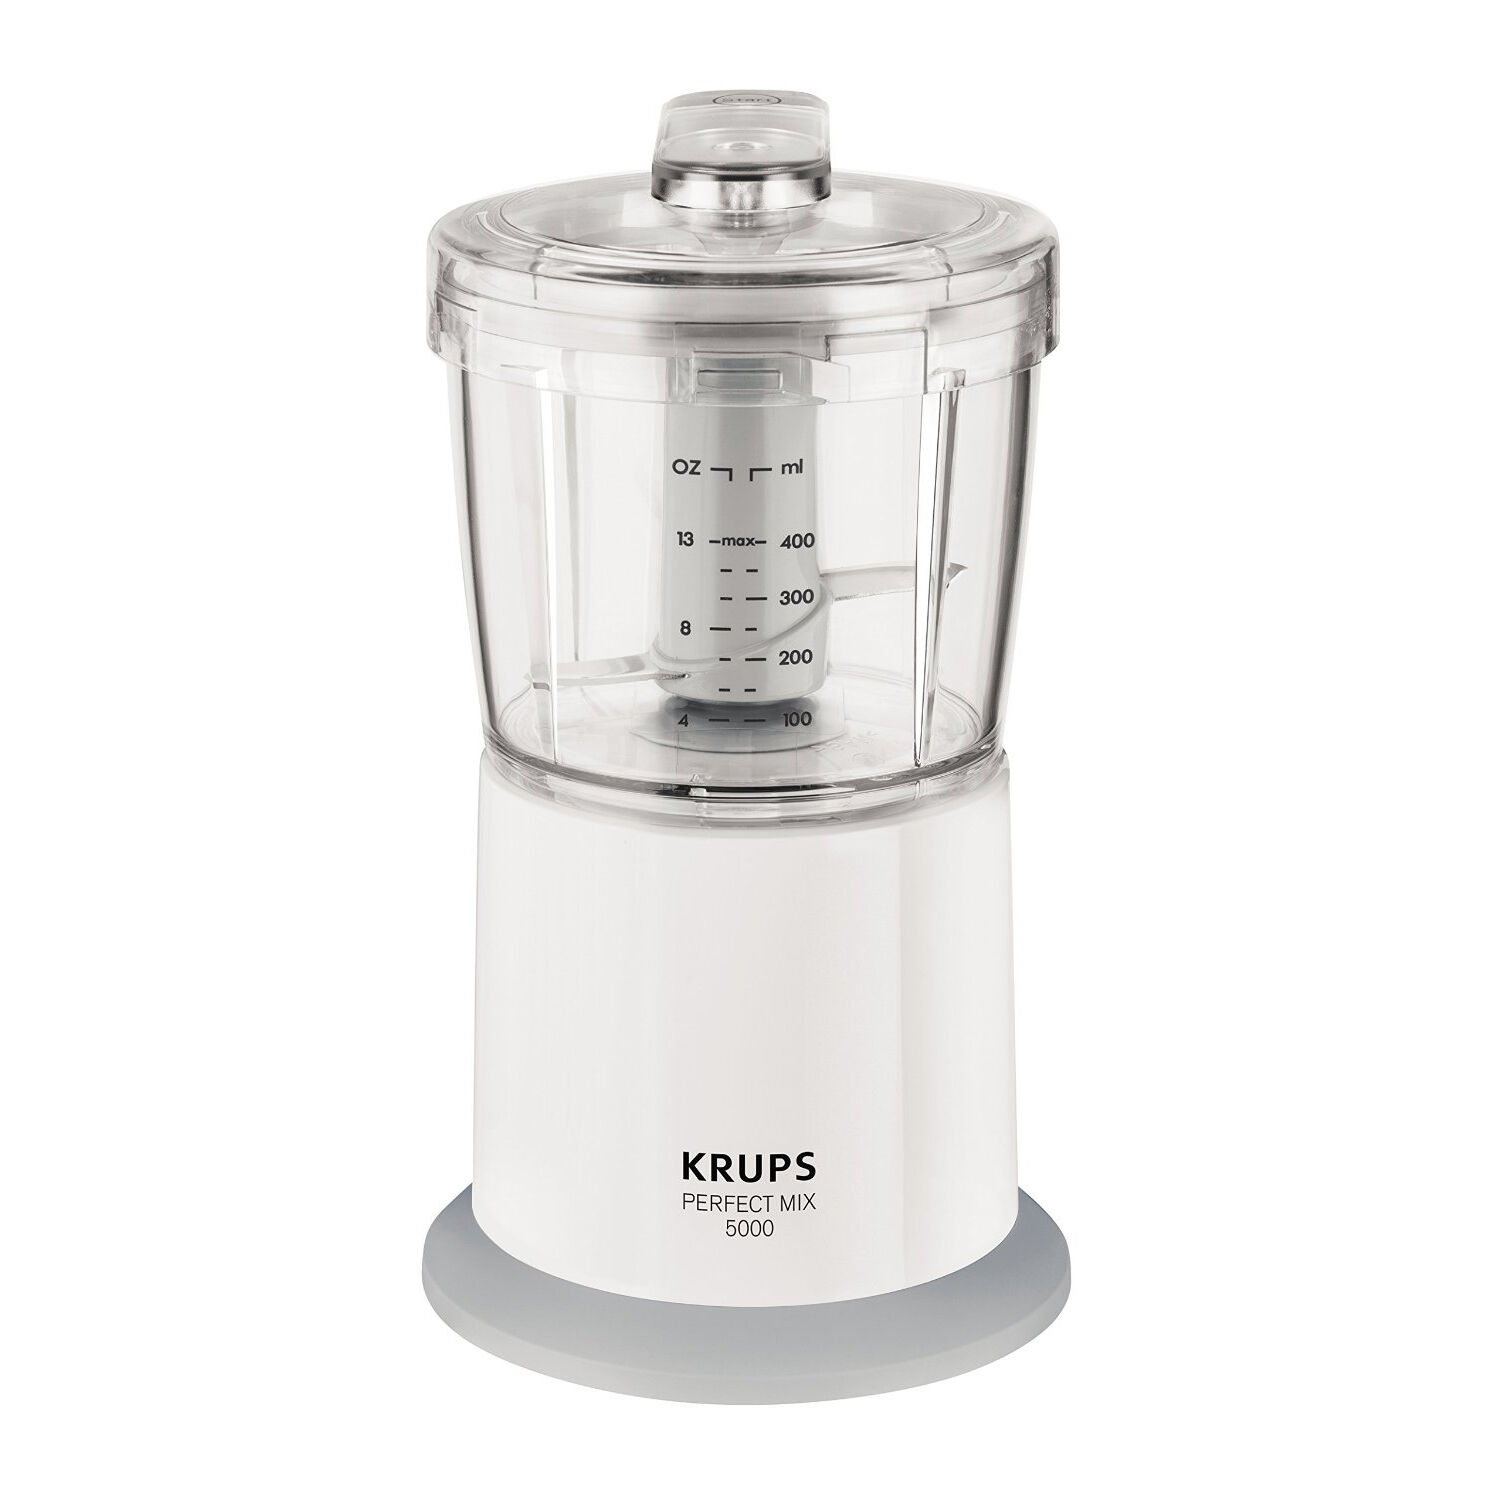 Krups GVA151 Speedy Pro shrougeder food chopper blanc